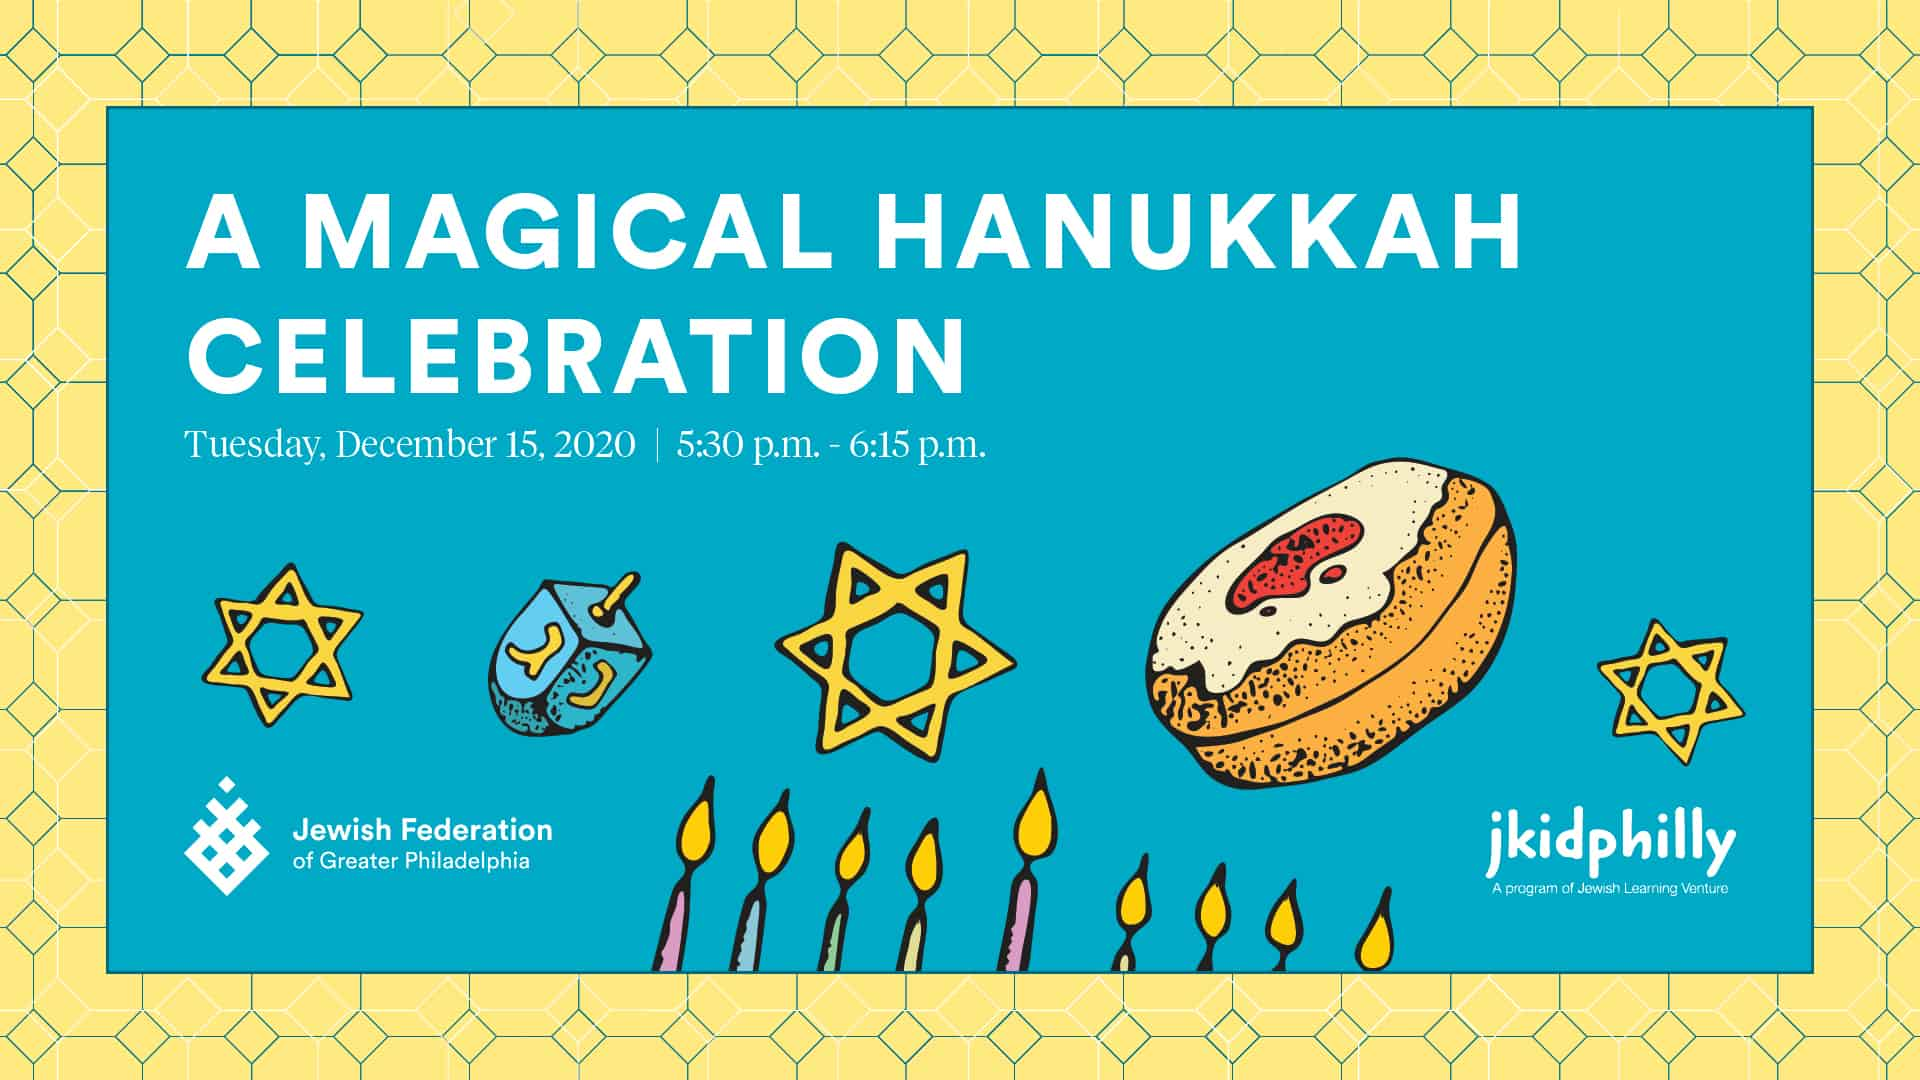 """""""A Magical Hanukkah Celebration. Tuesday, December 15, 2020, 5:30pm - 6:15pm. Logos for Jewish Federation of Philadelphia and JKidPhilly at bottom. Images of Stars of David, Dreidels, sufganiyot, and a menorah along the bottom."""